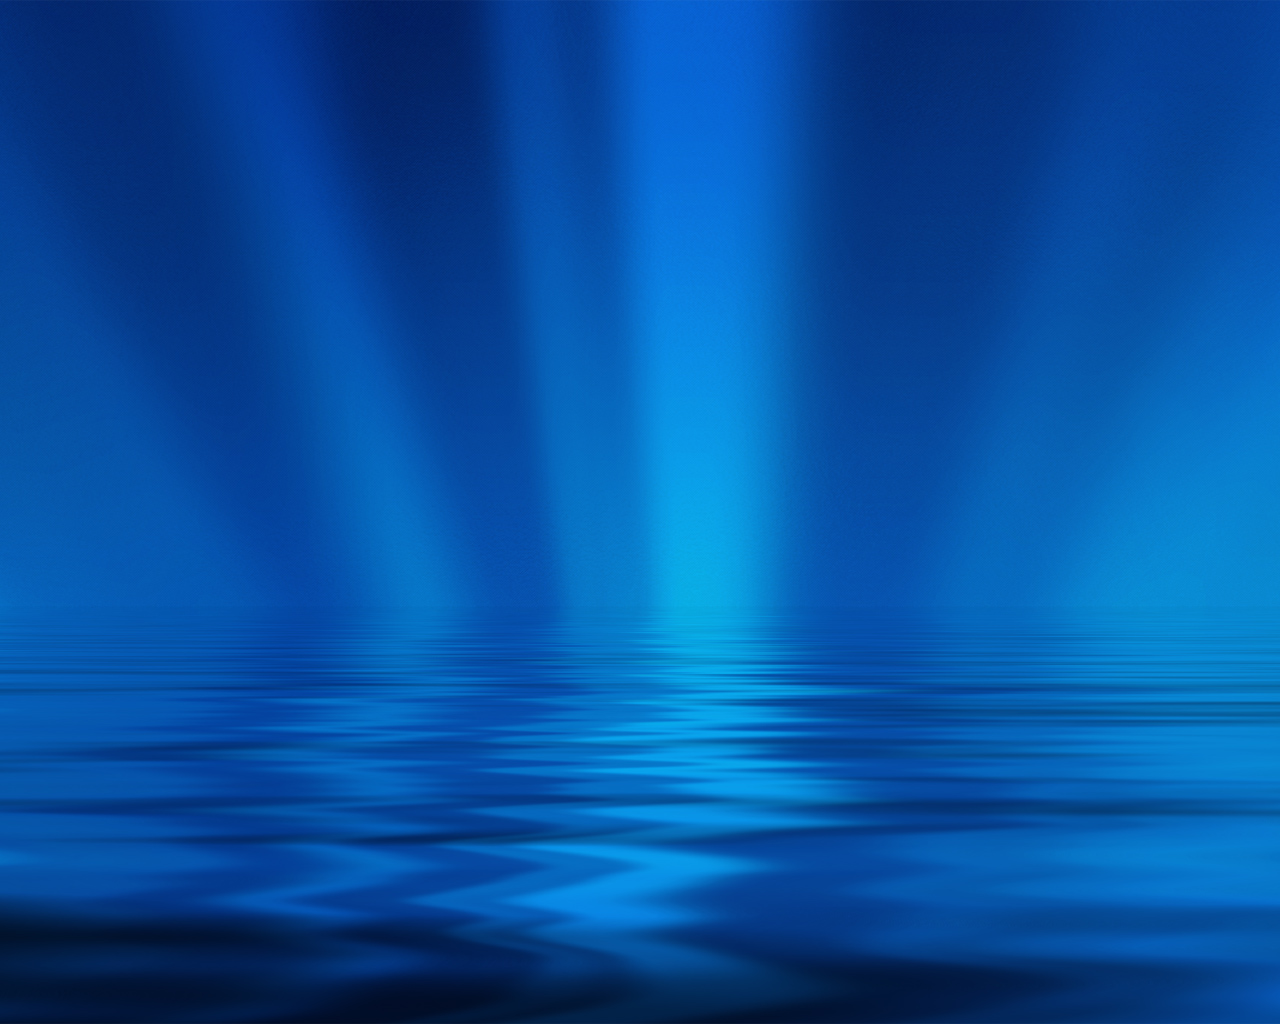 Blue Wallpapers HD